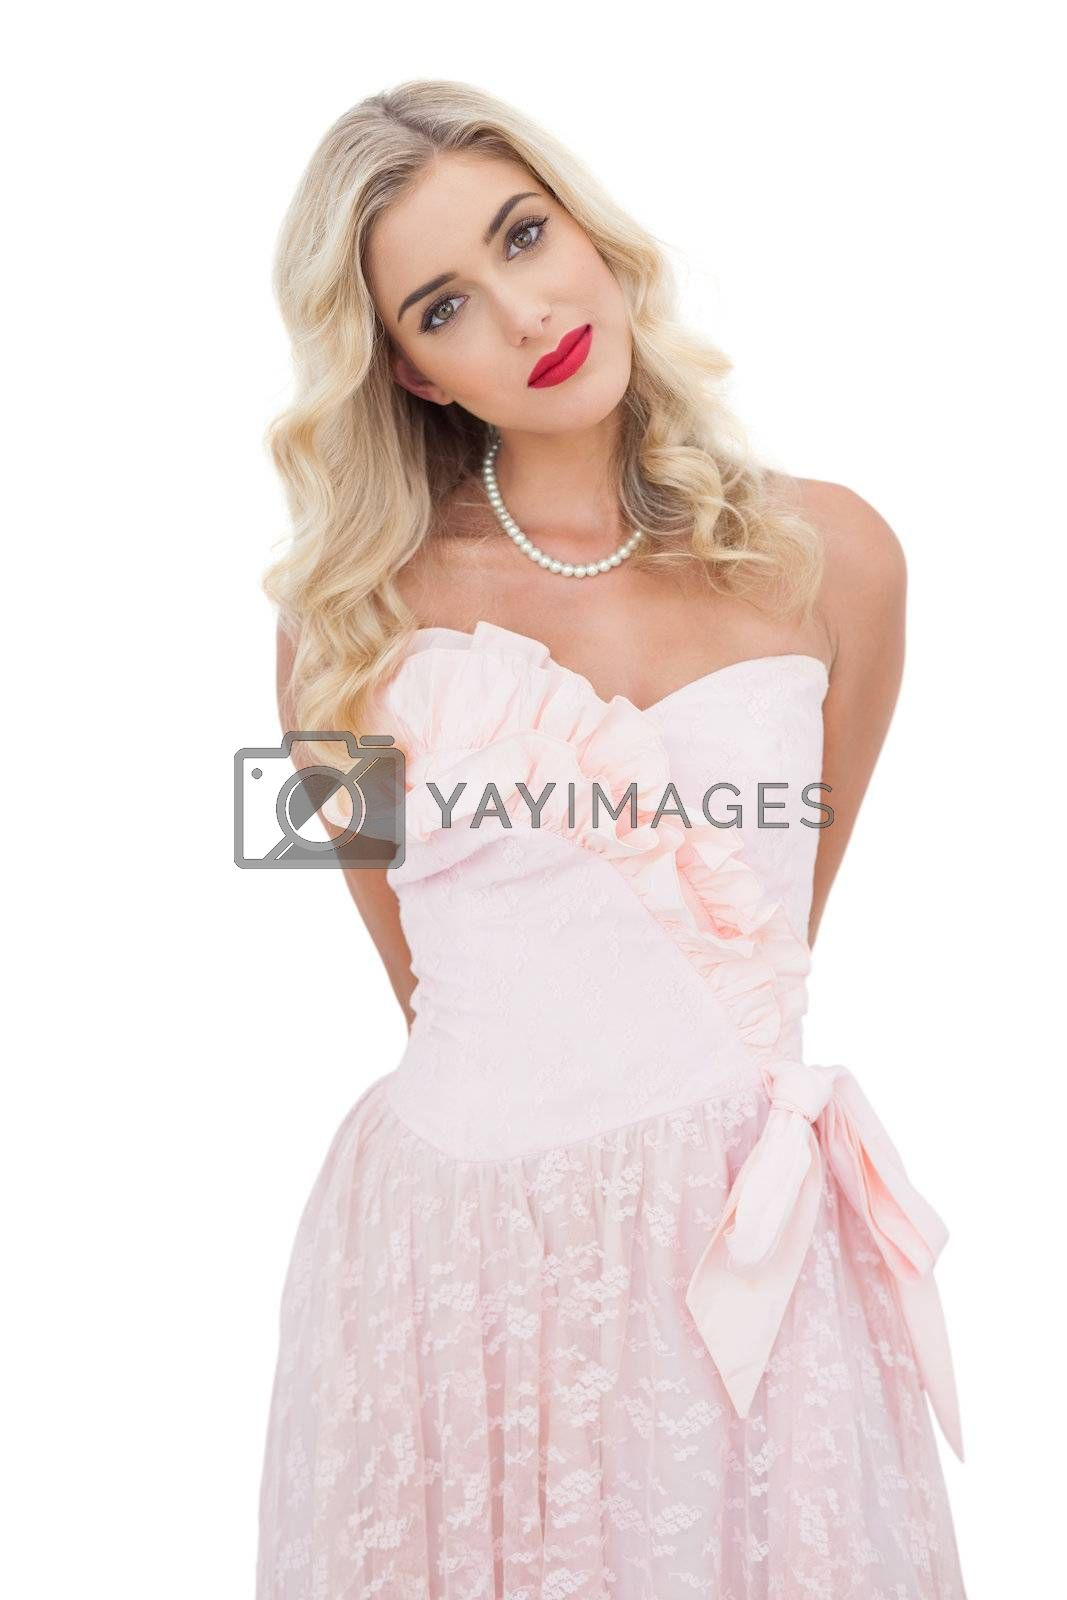 Content blonde model in pink dress posing looking at camera by Wavebreakmedia